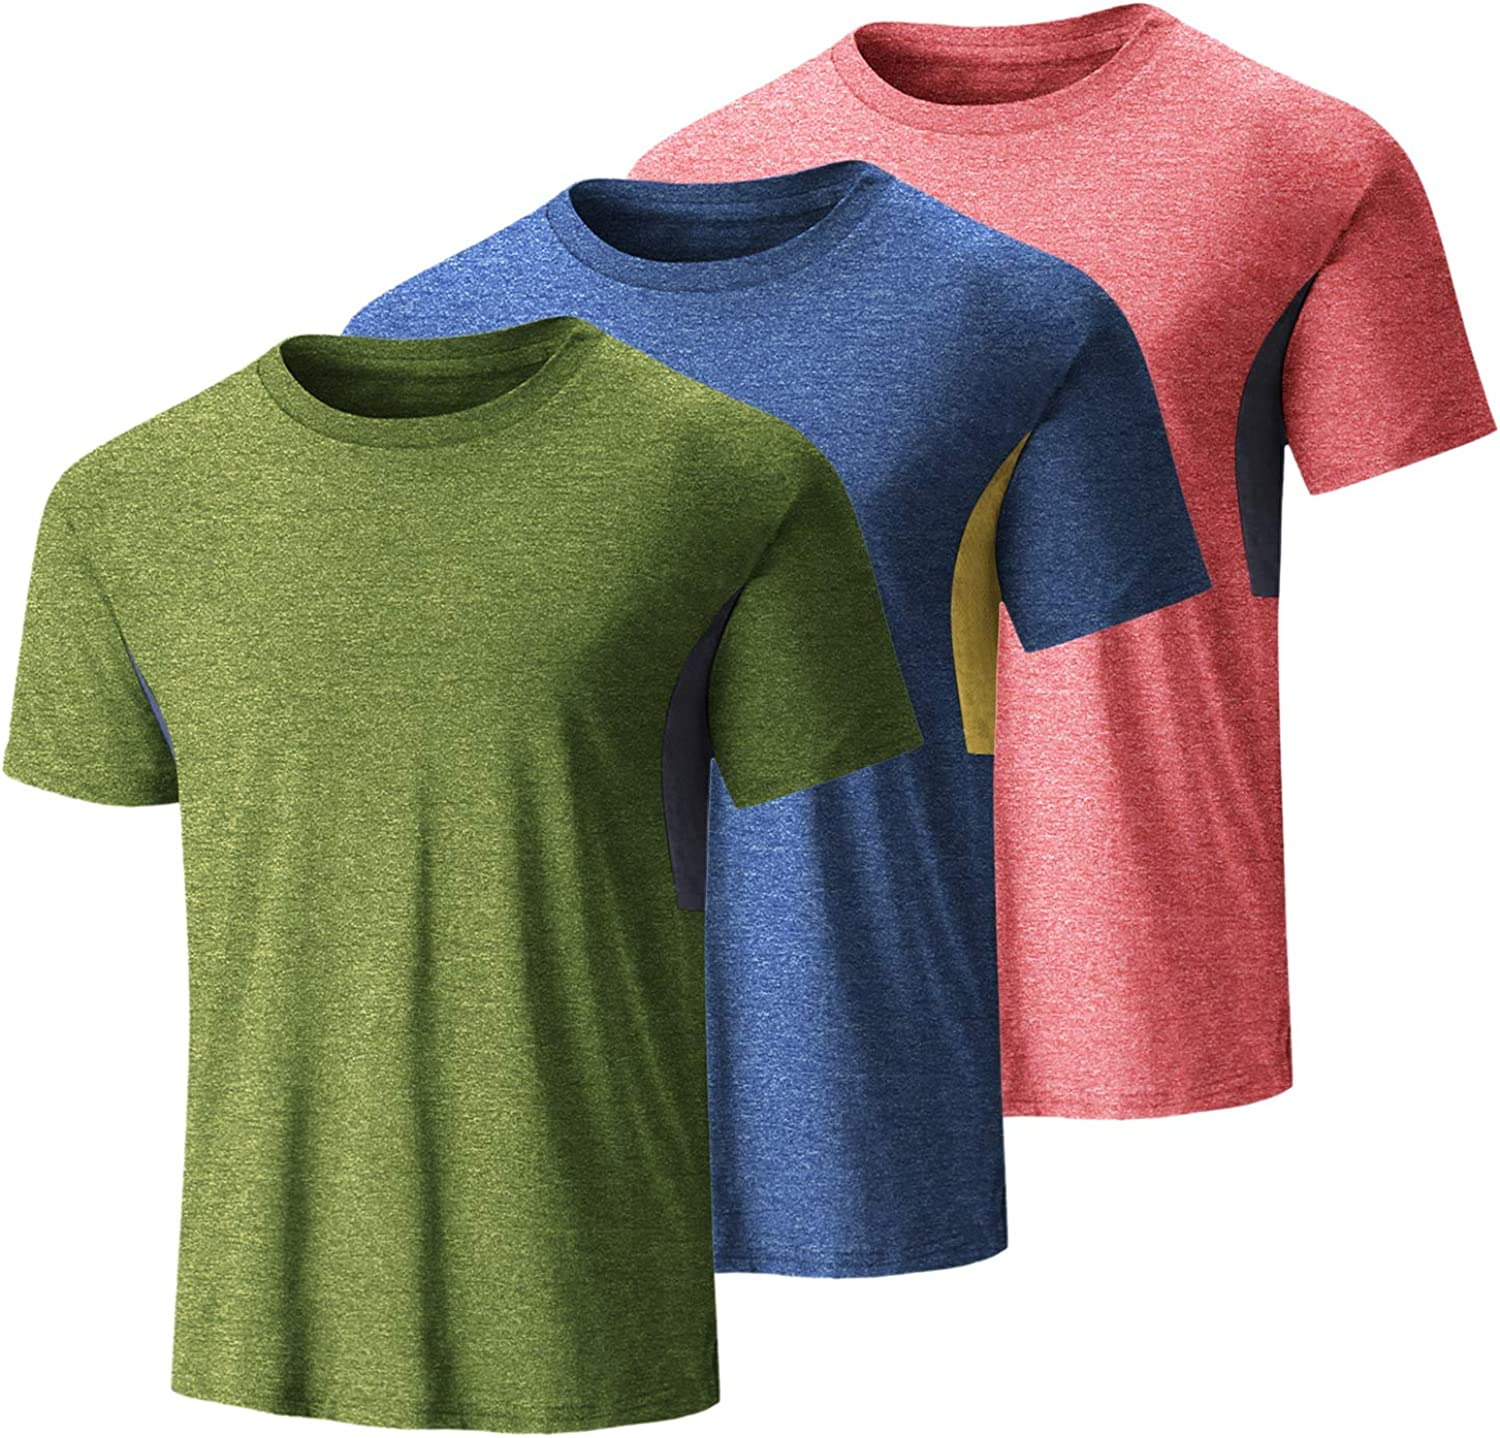 COOFANDY Men's 3 Pack Workout T Shirts Athletic Runnin Dry Quick Max 75% OFF Tulsa Mall